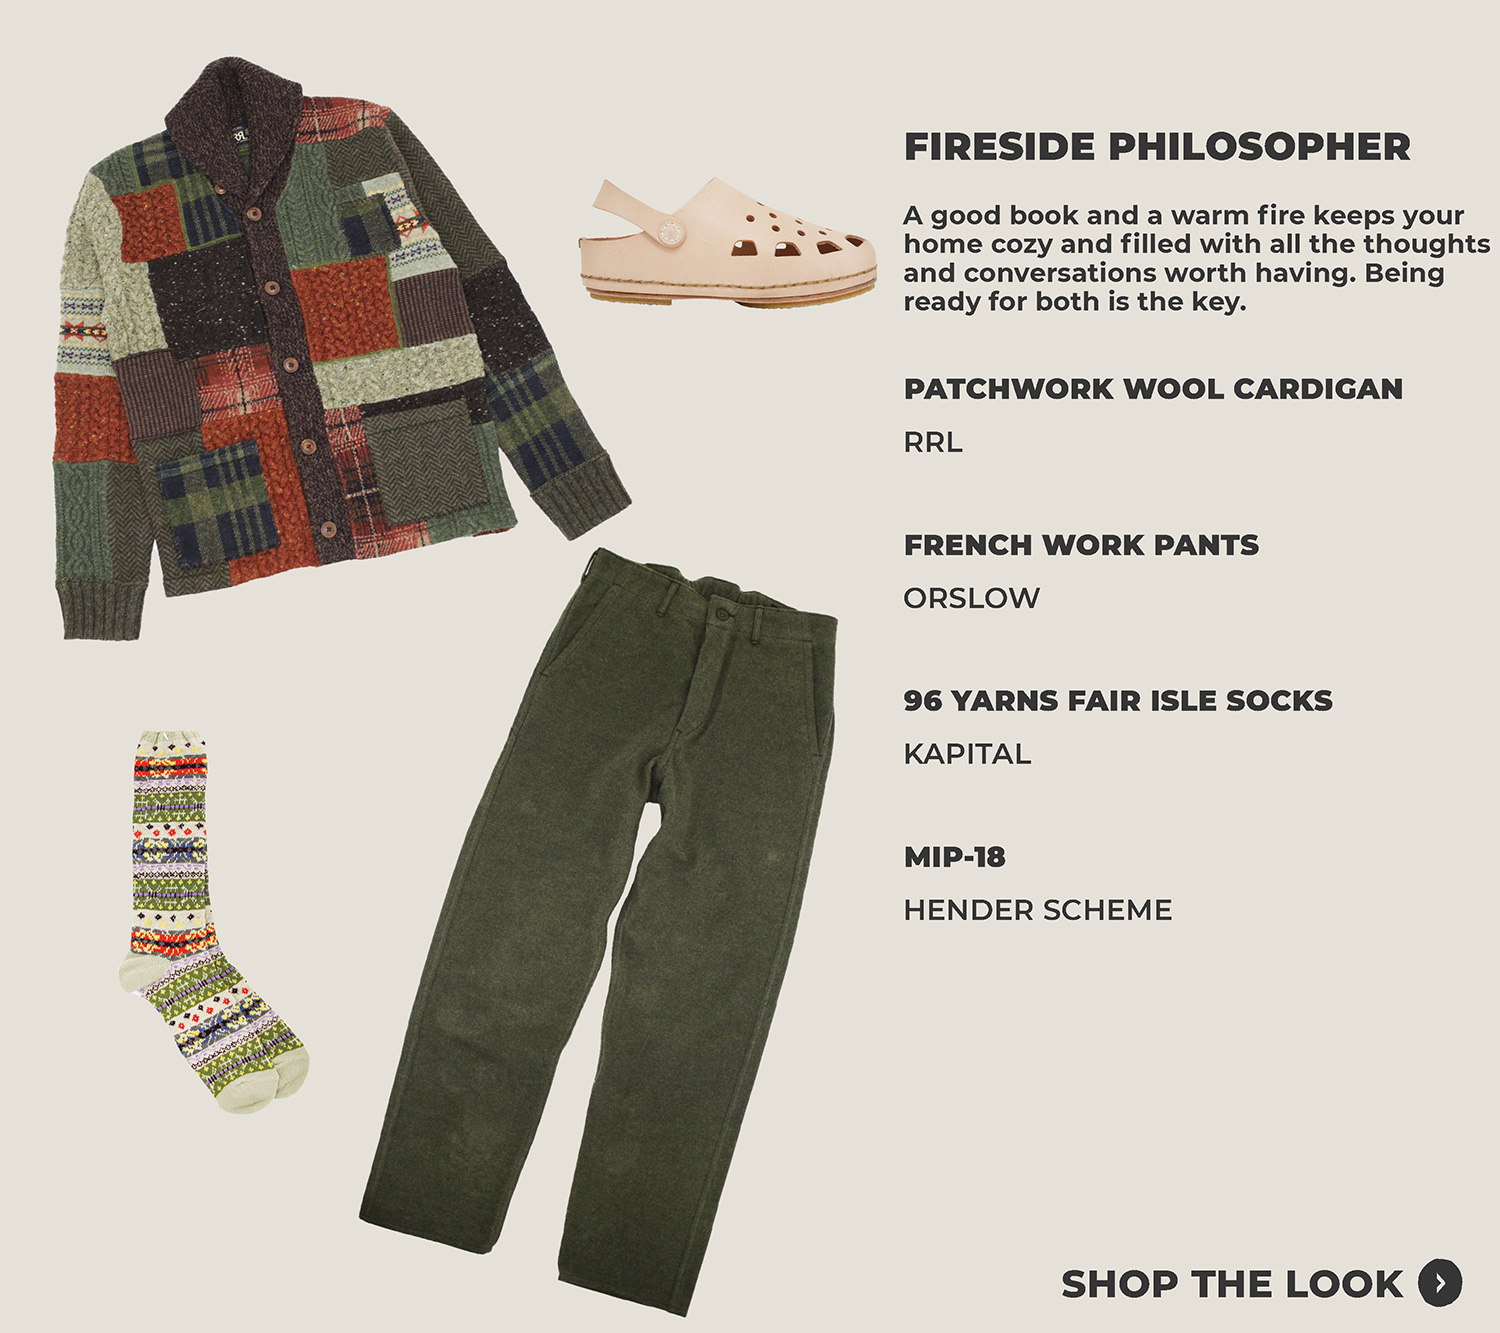 look one featuring rrl patchwork cardigan, orslow french work pants, kapital socks and hender scheme mip-18 shoes